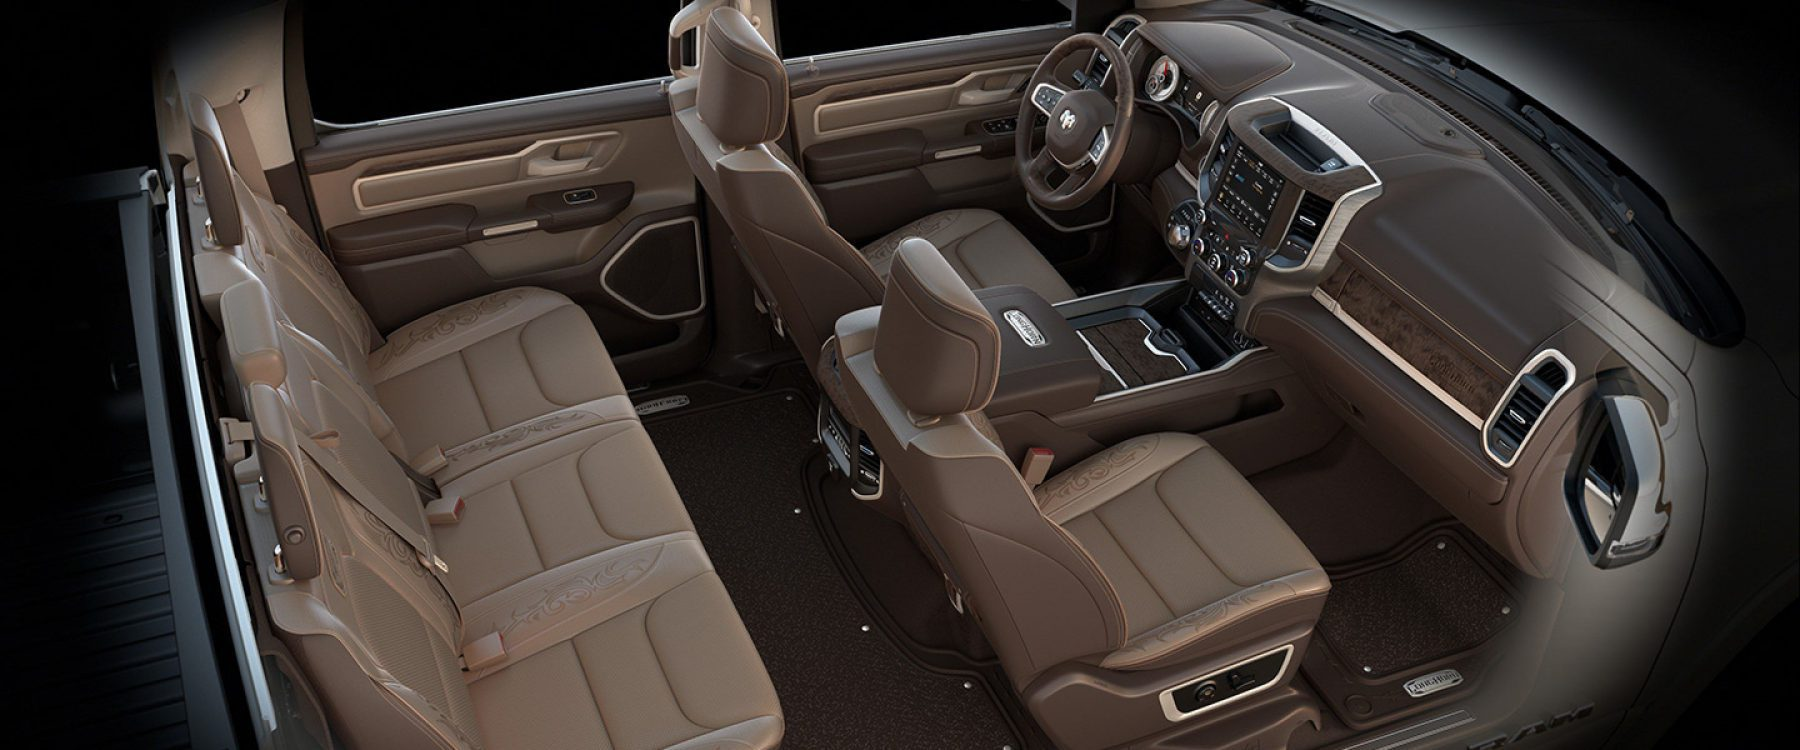 2019 Ram 1500 Interior Seats Longhorn Natura plus filigree leather